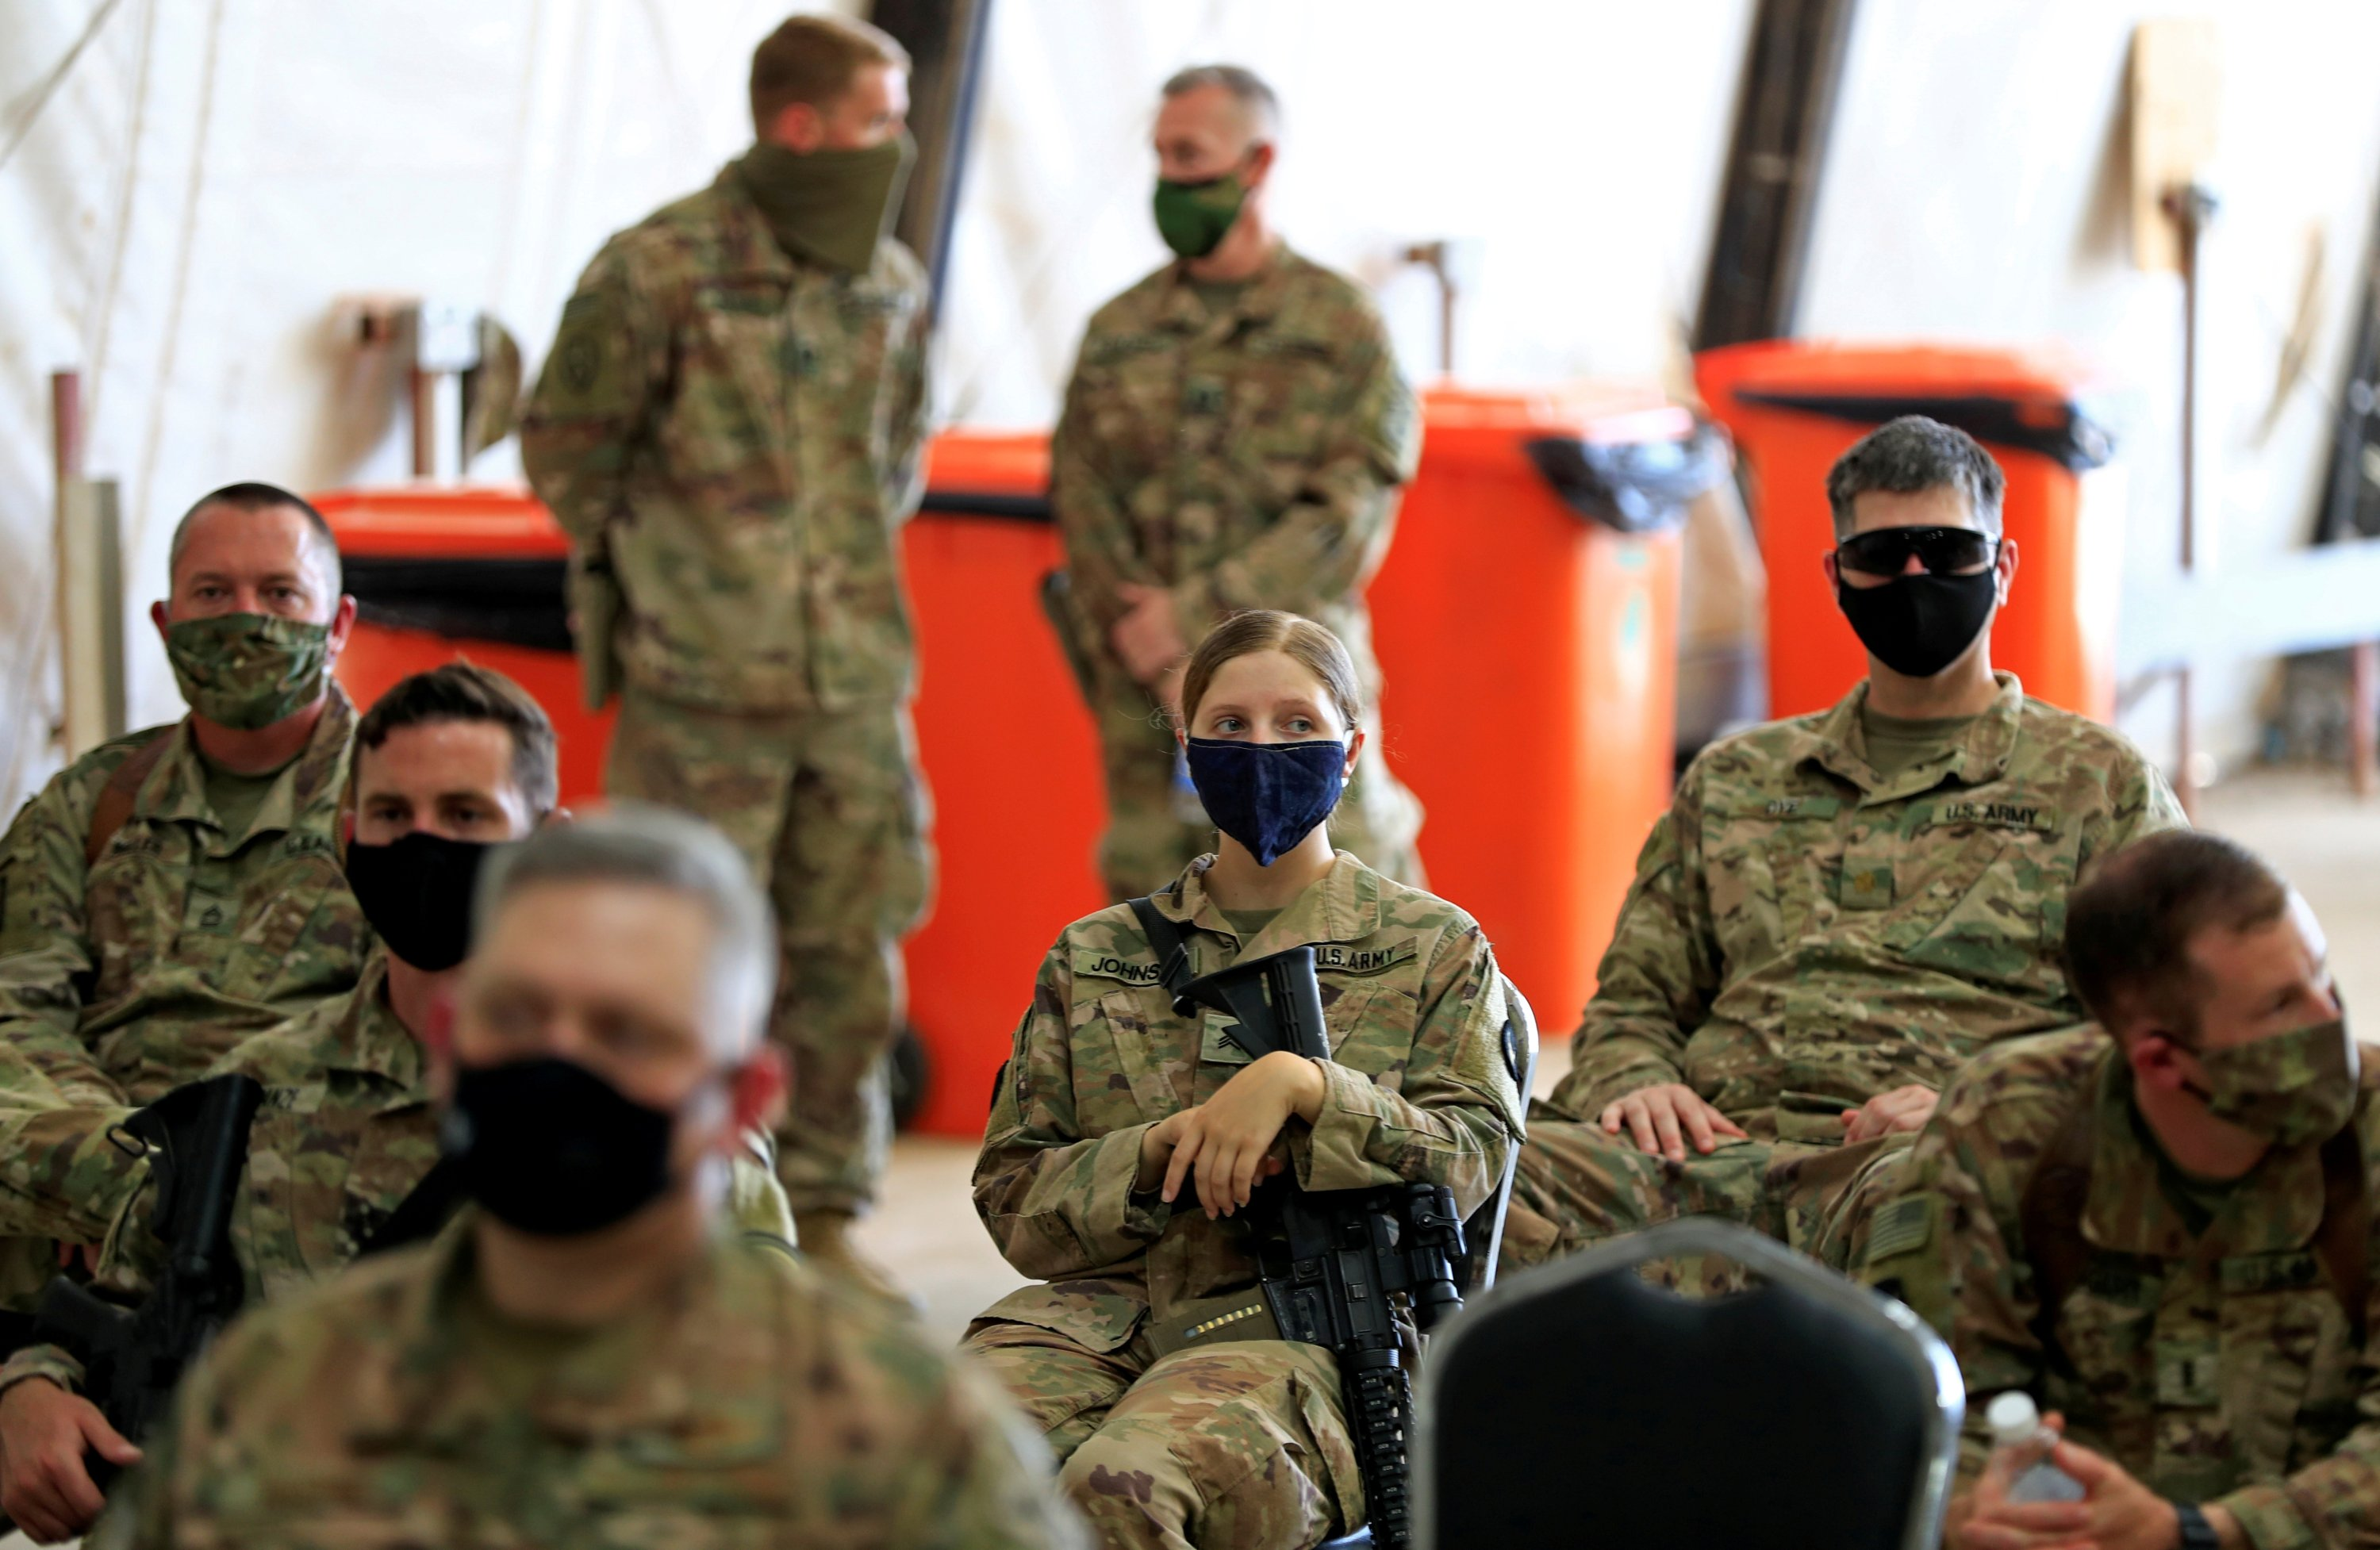 U.S. soldiers wearing protective masks are seen during a handover ceremony of Taji military base from U.S.-led coalition troops to Iraqi security forces, in the base north of Baghdad, Iraq, Aug. 23, 2020. (REUTERS Photo)